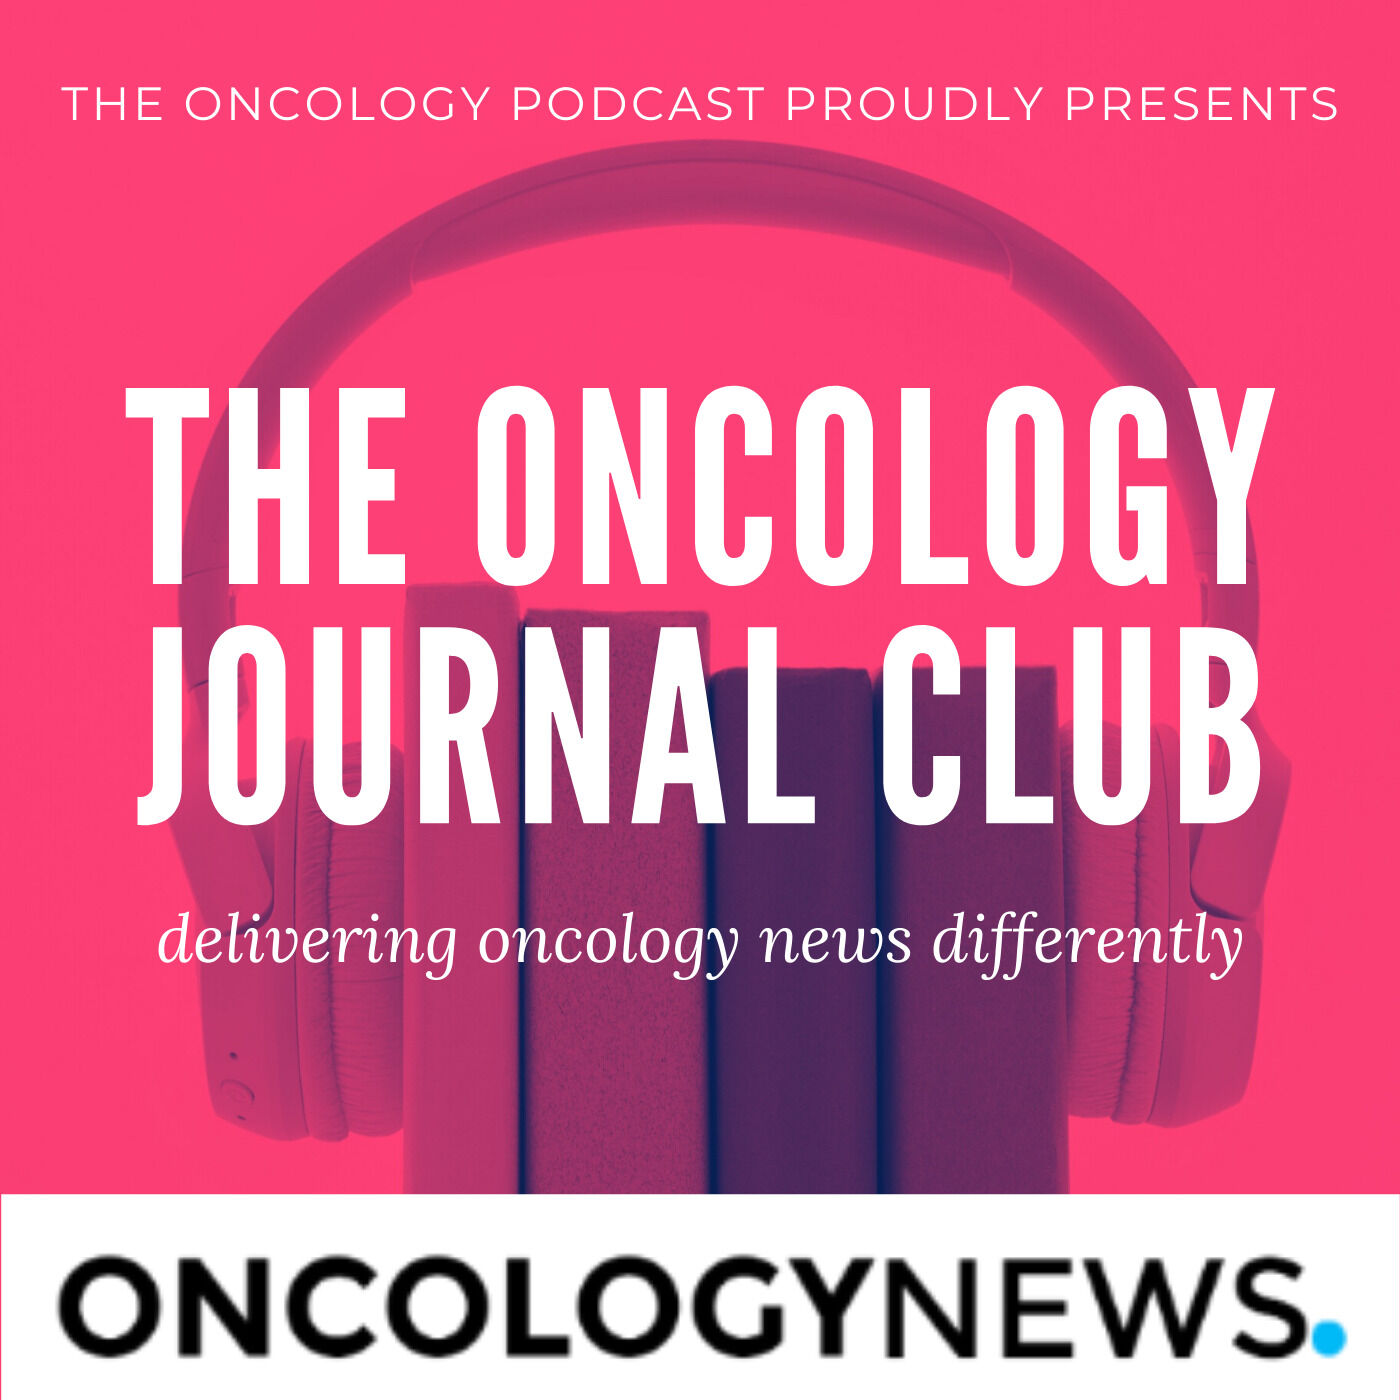 The Oncology Journal Club Episode 5: Cachexia, Gender Equity and 'Manels', Quick Bites, Special Guest Dr Christopher Steer and much more...